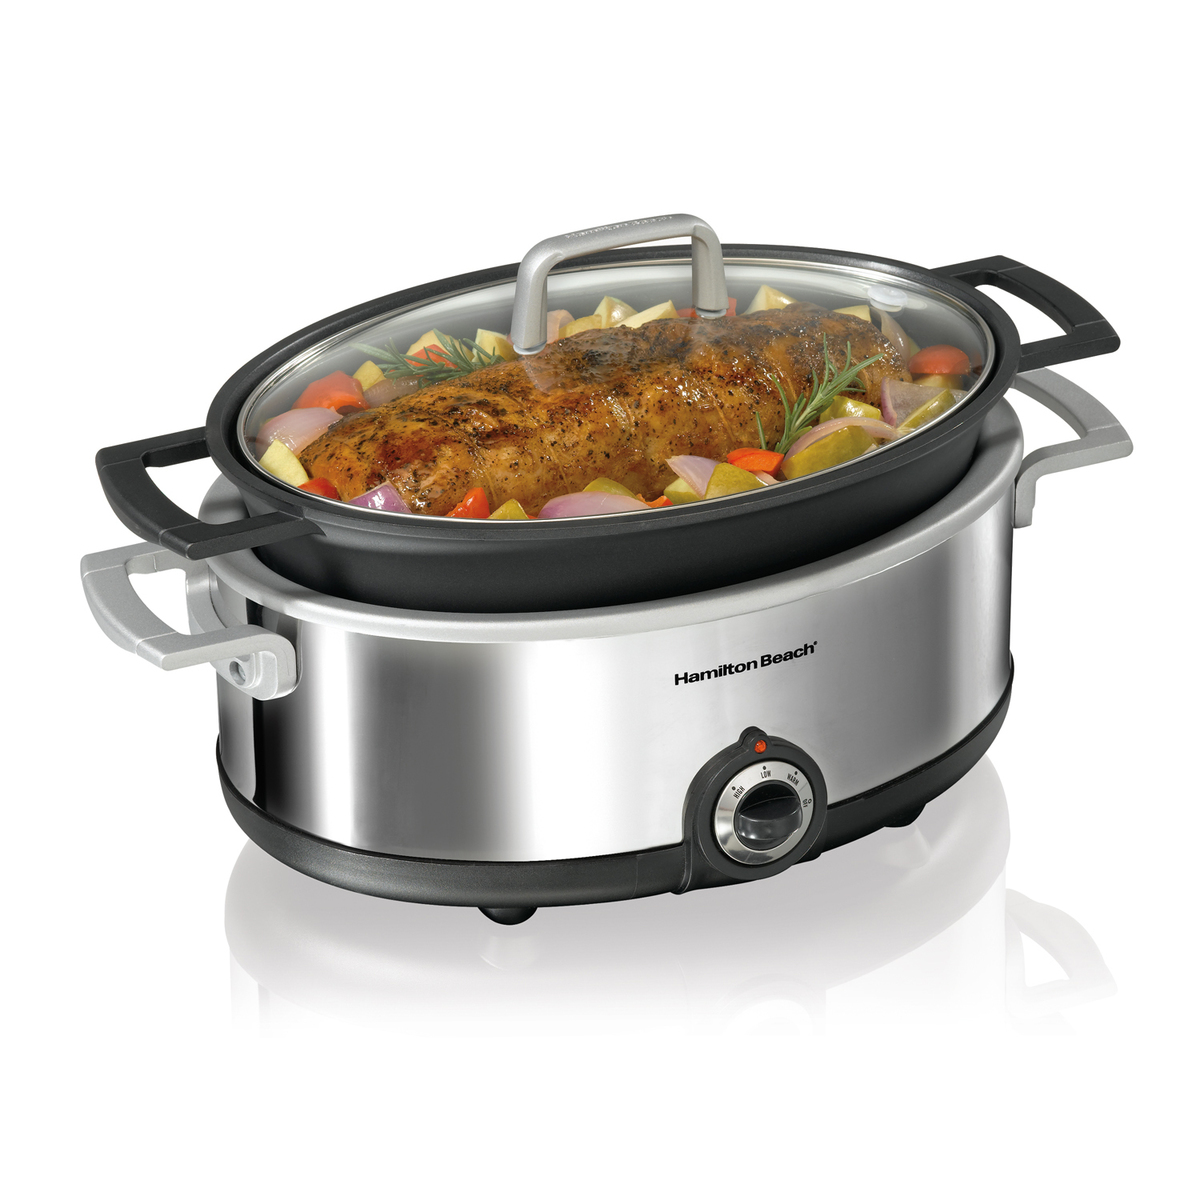 Premiere Cookware 5 1/2 Quart Slow Cooker (33351)